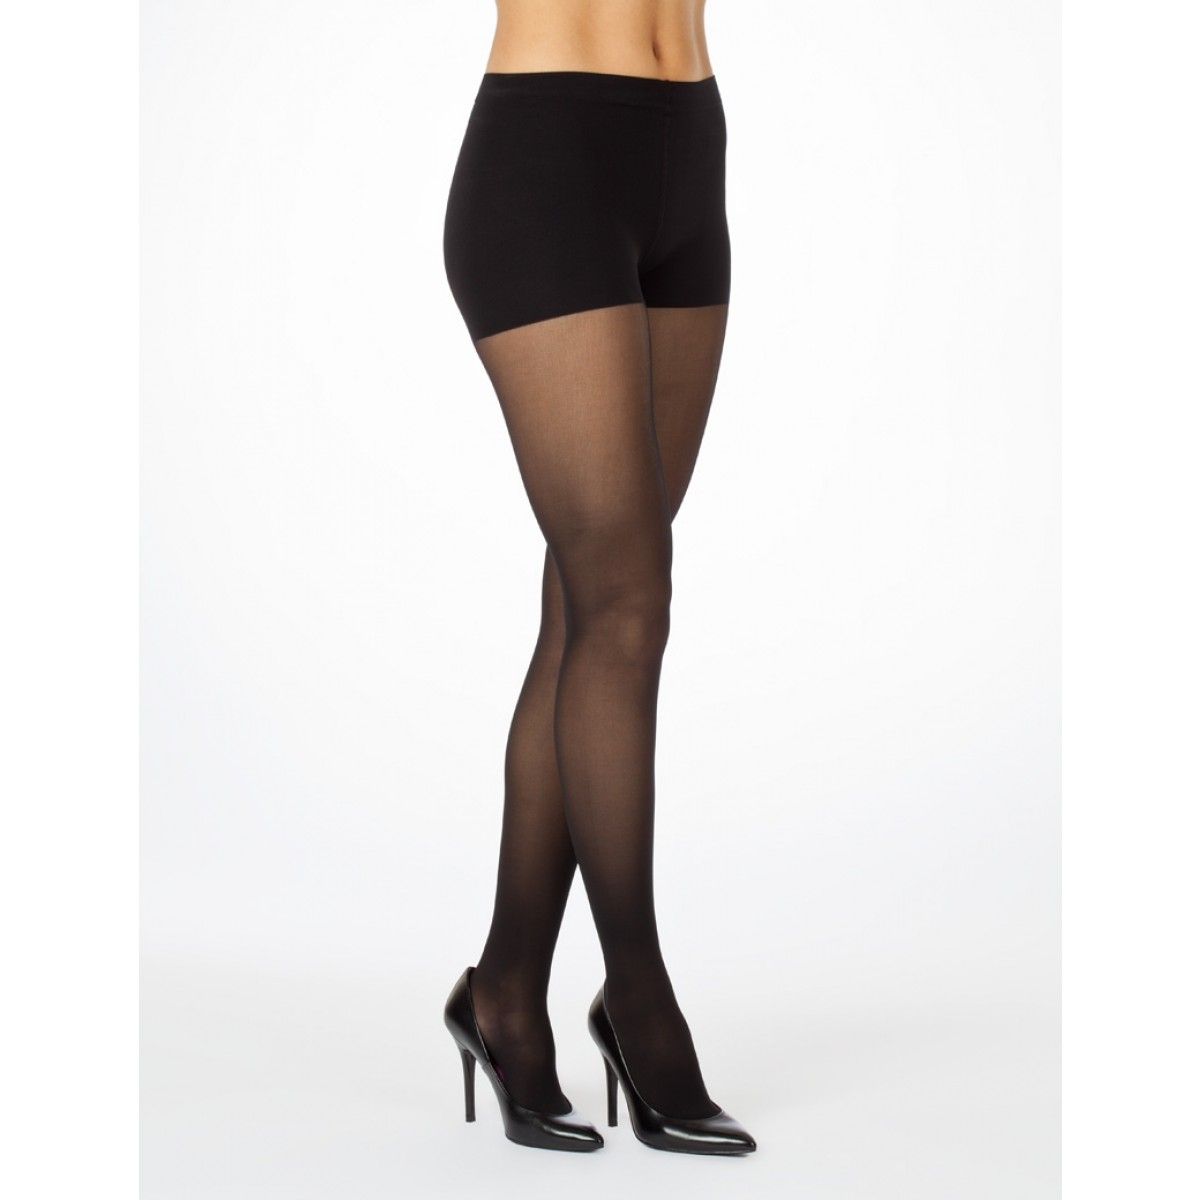 ITEM m6 Tights Translucent Black-35